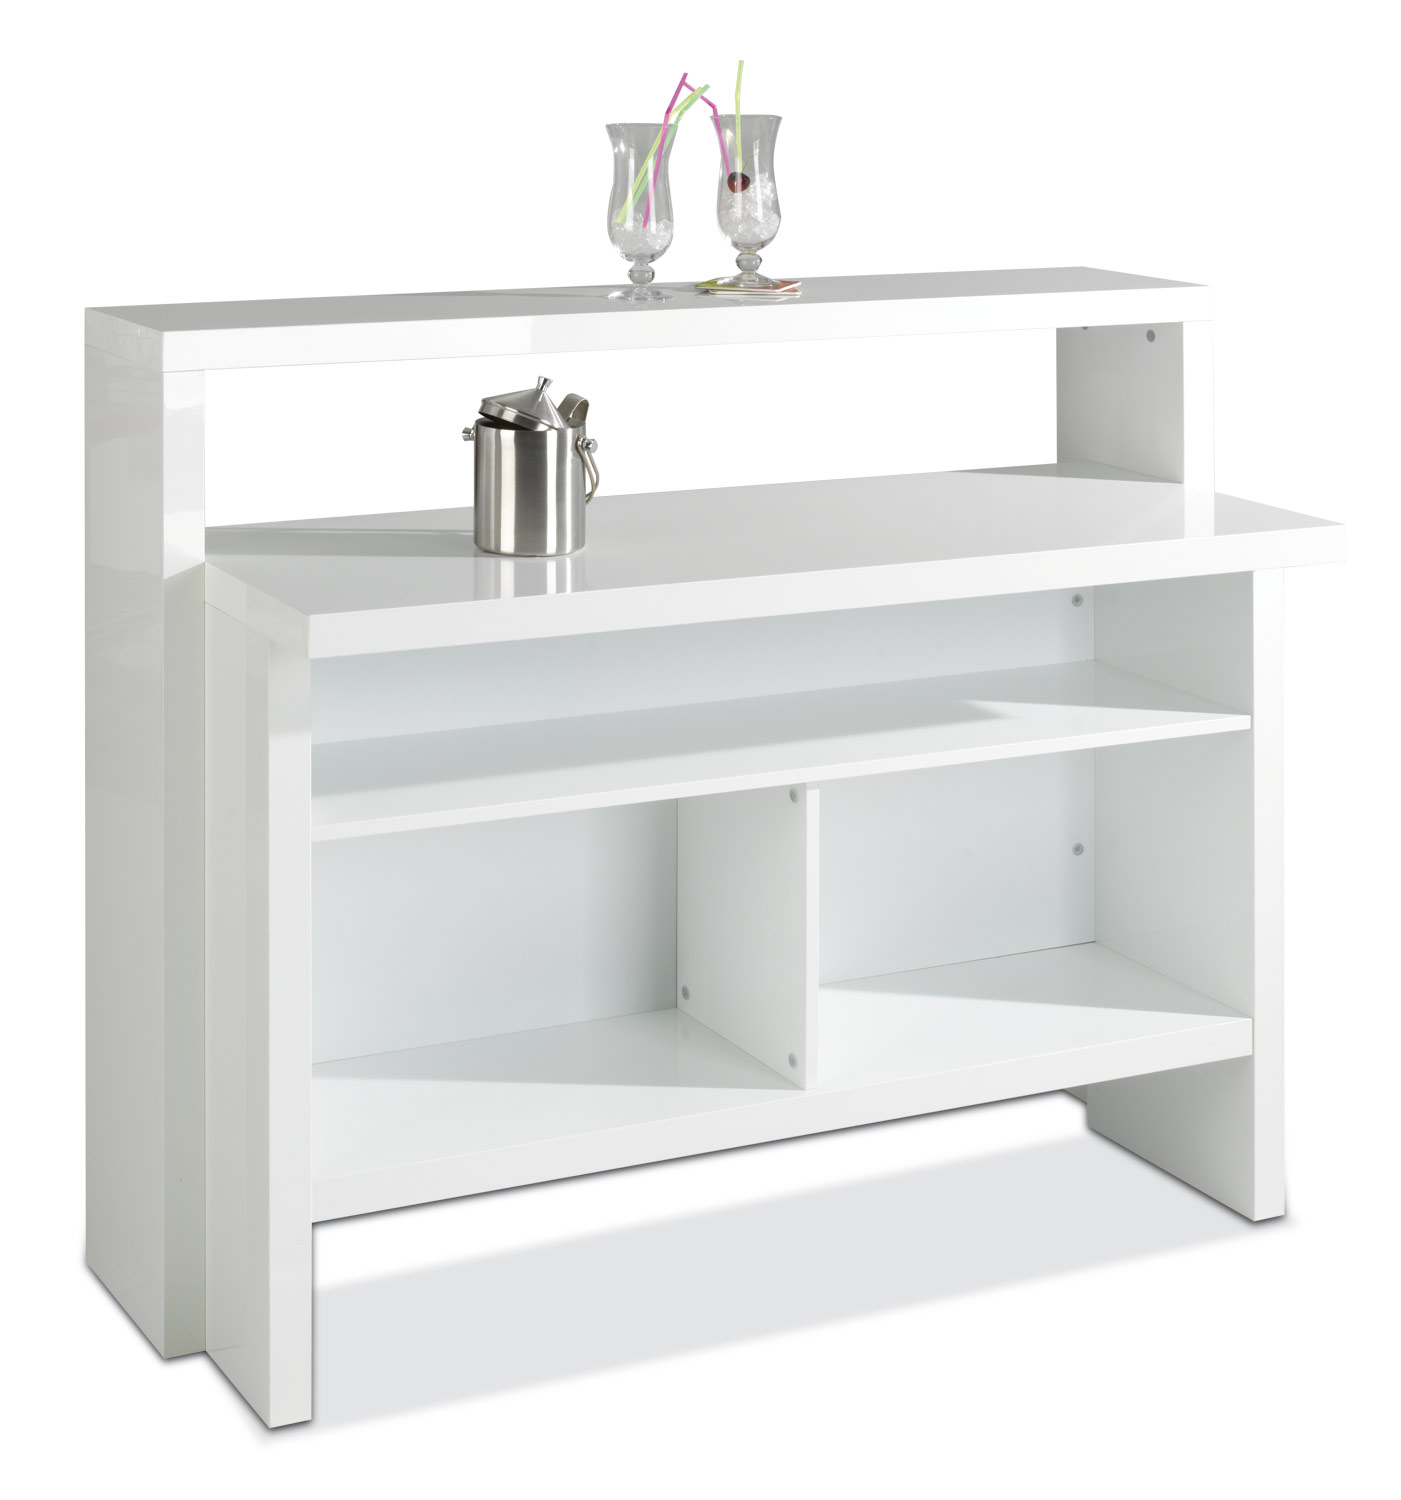 moderne minibar in wei em dekor mit praktischem regal scully m bel jack. Black Bedroom Furniture Sets. Home Design Ideas